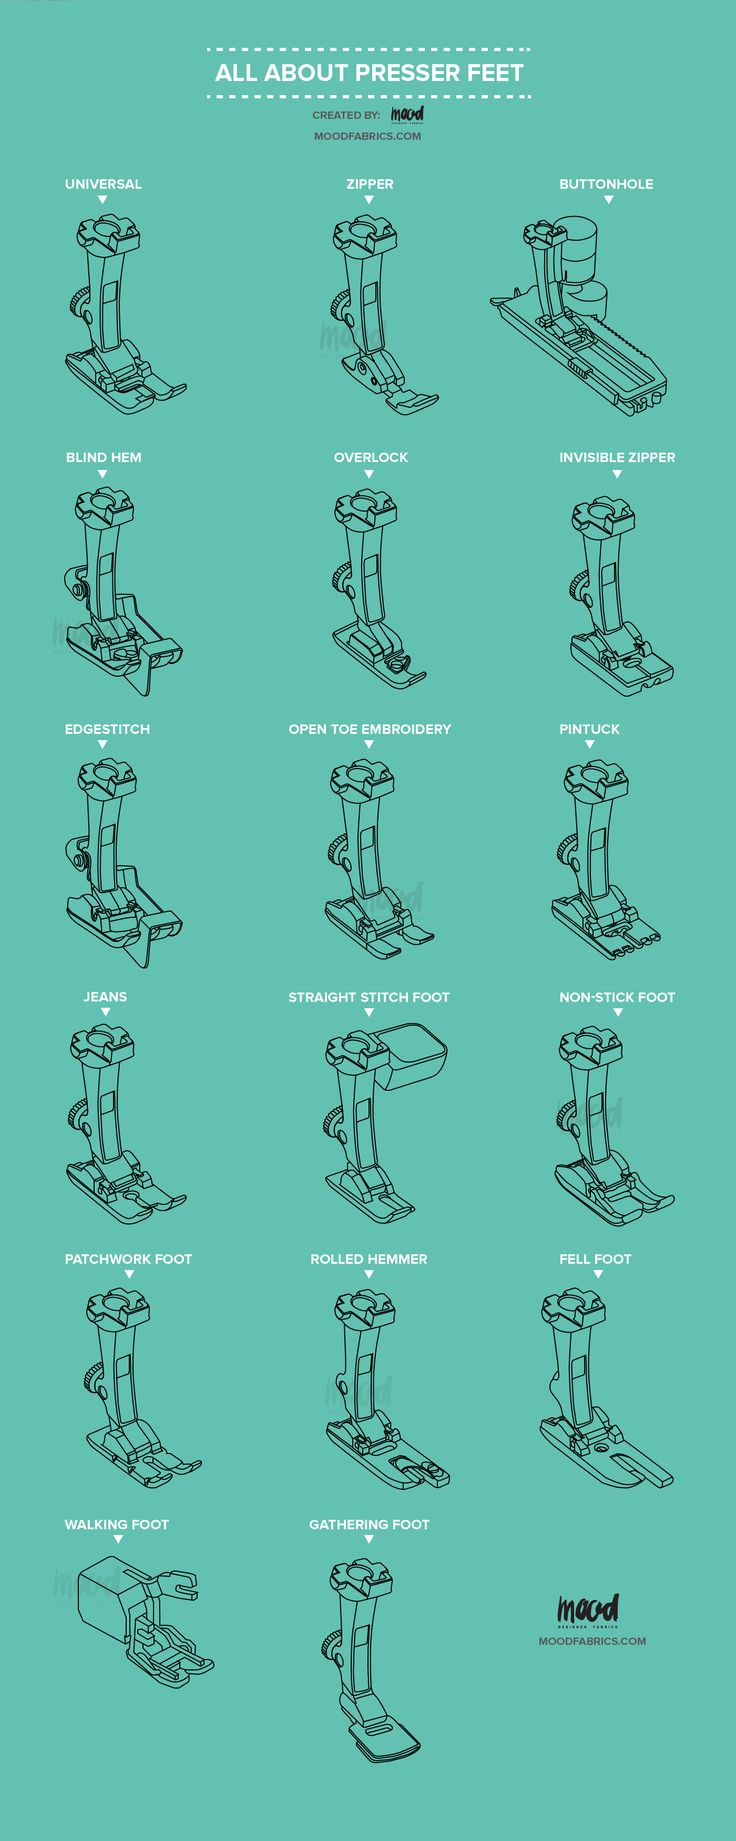 All About Presser Feet